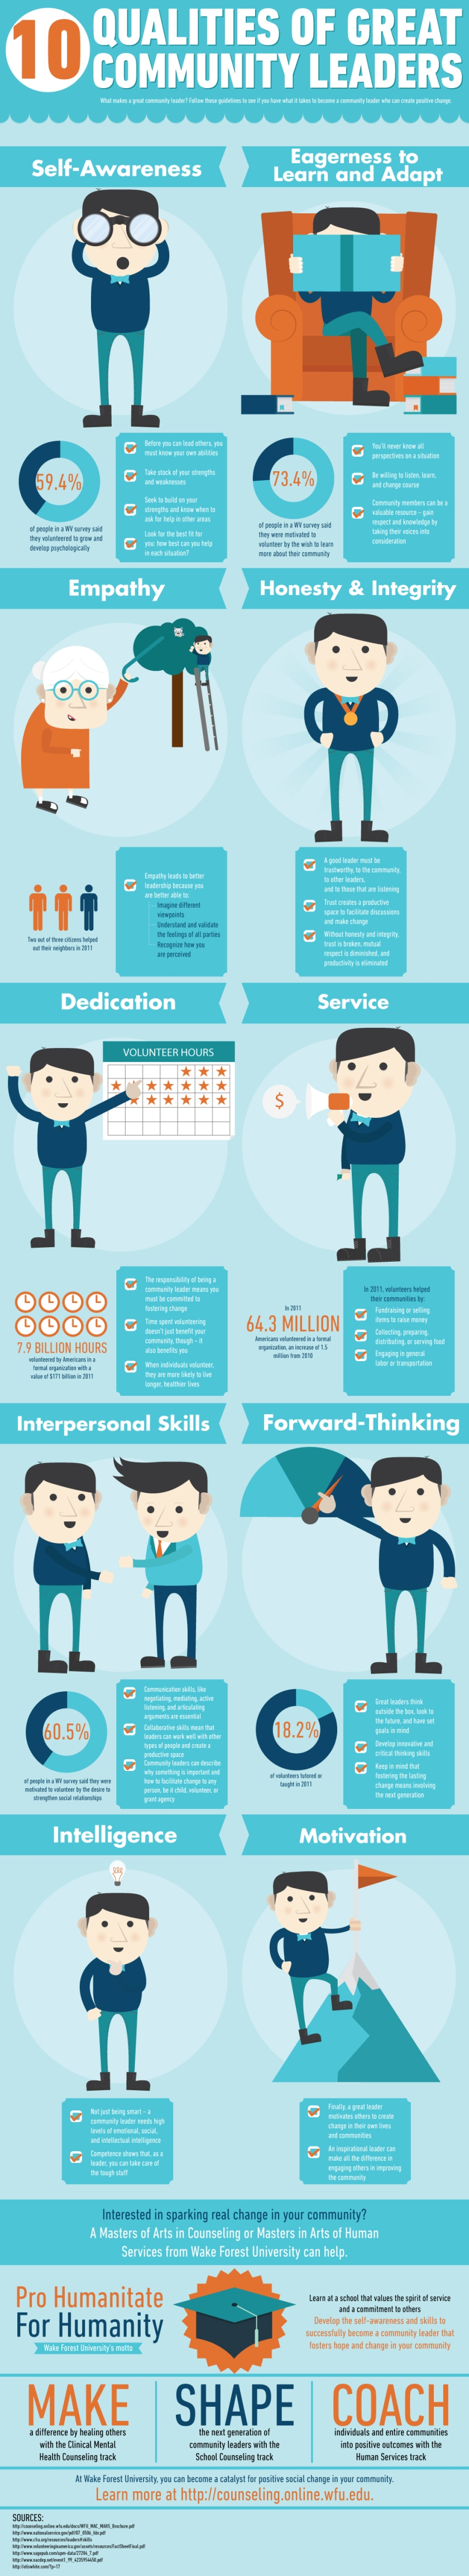 infographic-qualities-great-community-leaders